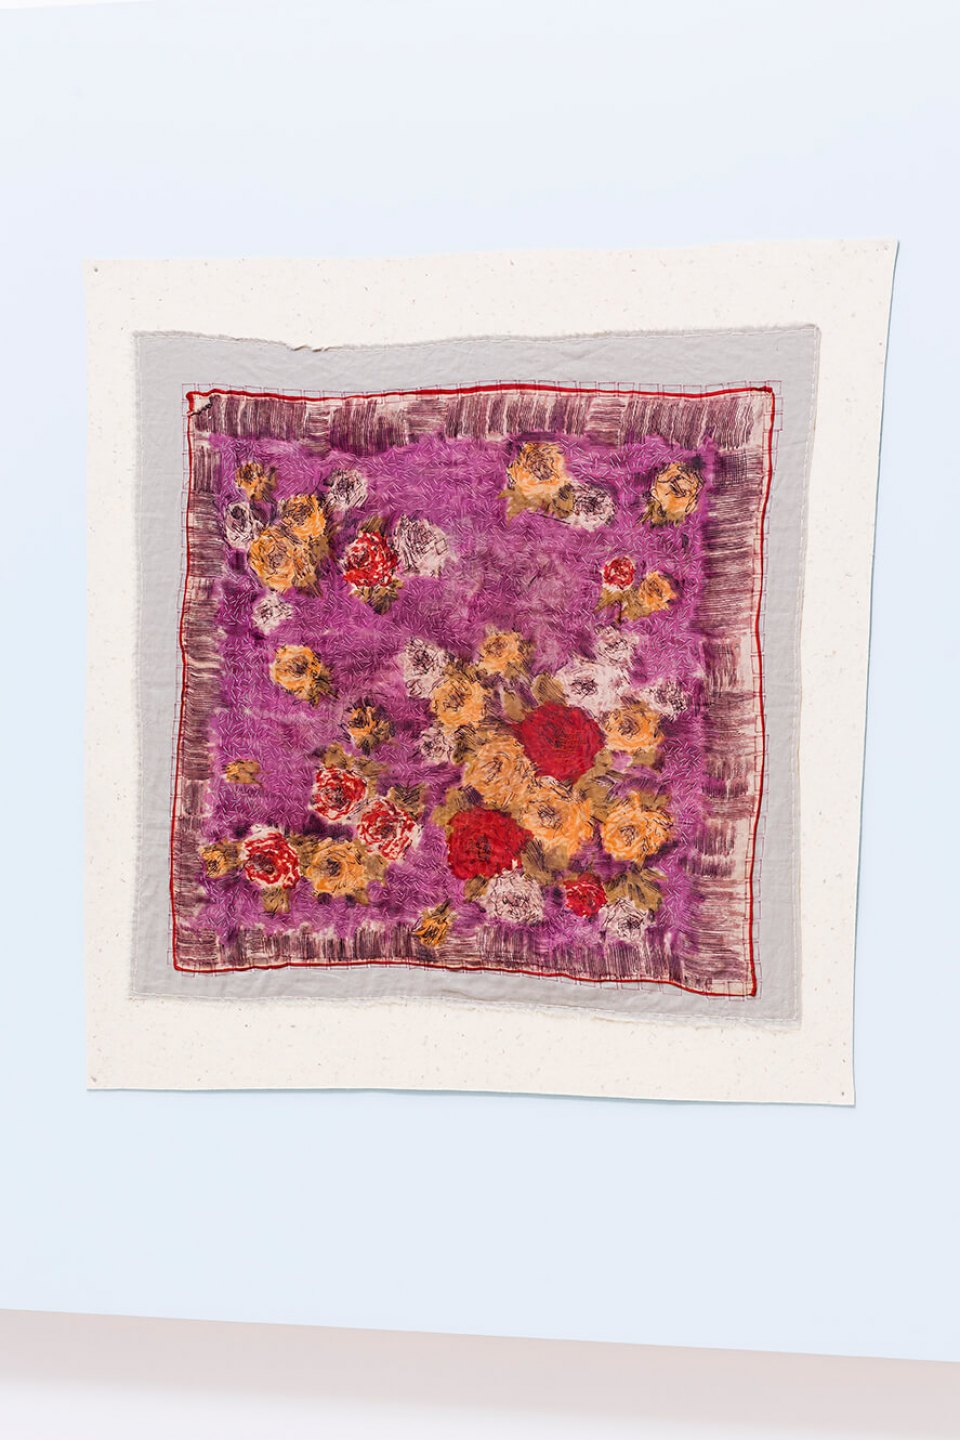 f.marquespeteado, <em>Bouquet Violeta, from Florais Rajados series</em>, 2014, composition including printed acetate, hand and machine embroidery on industrial felt, 90 × 90 cm - Mendes Wood DM